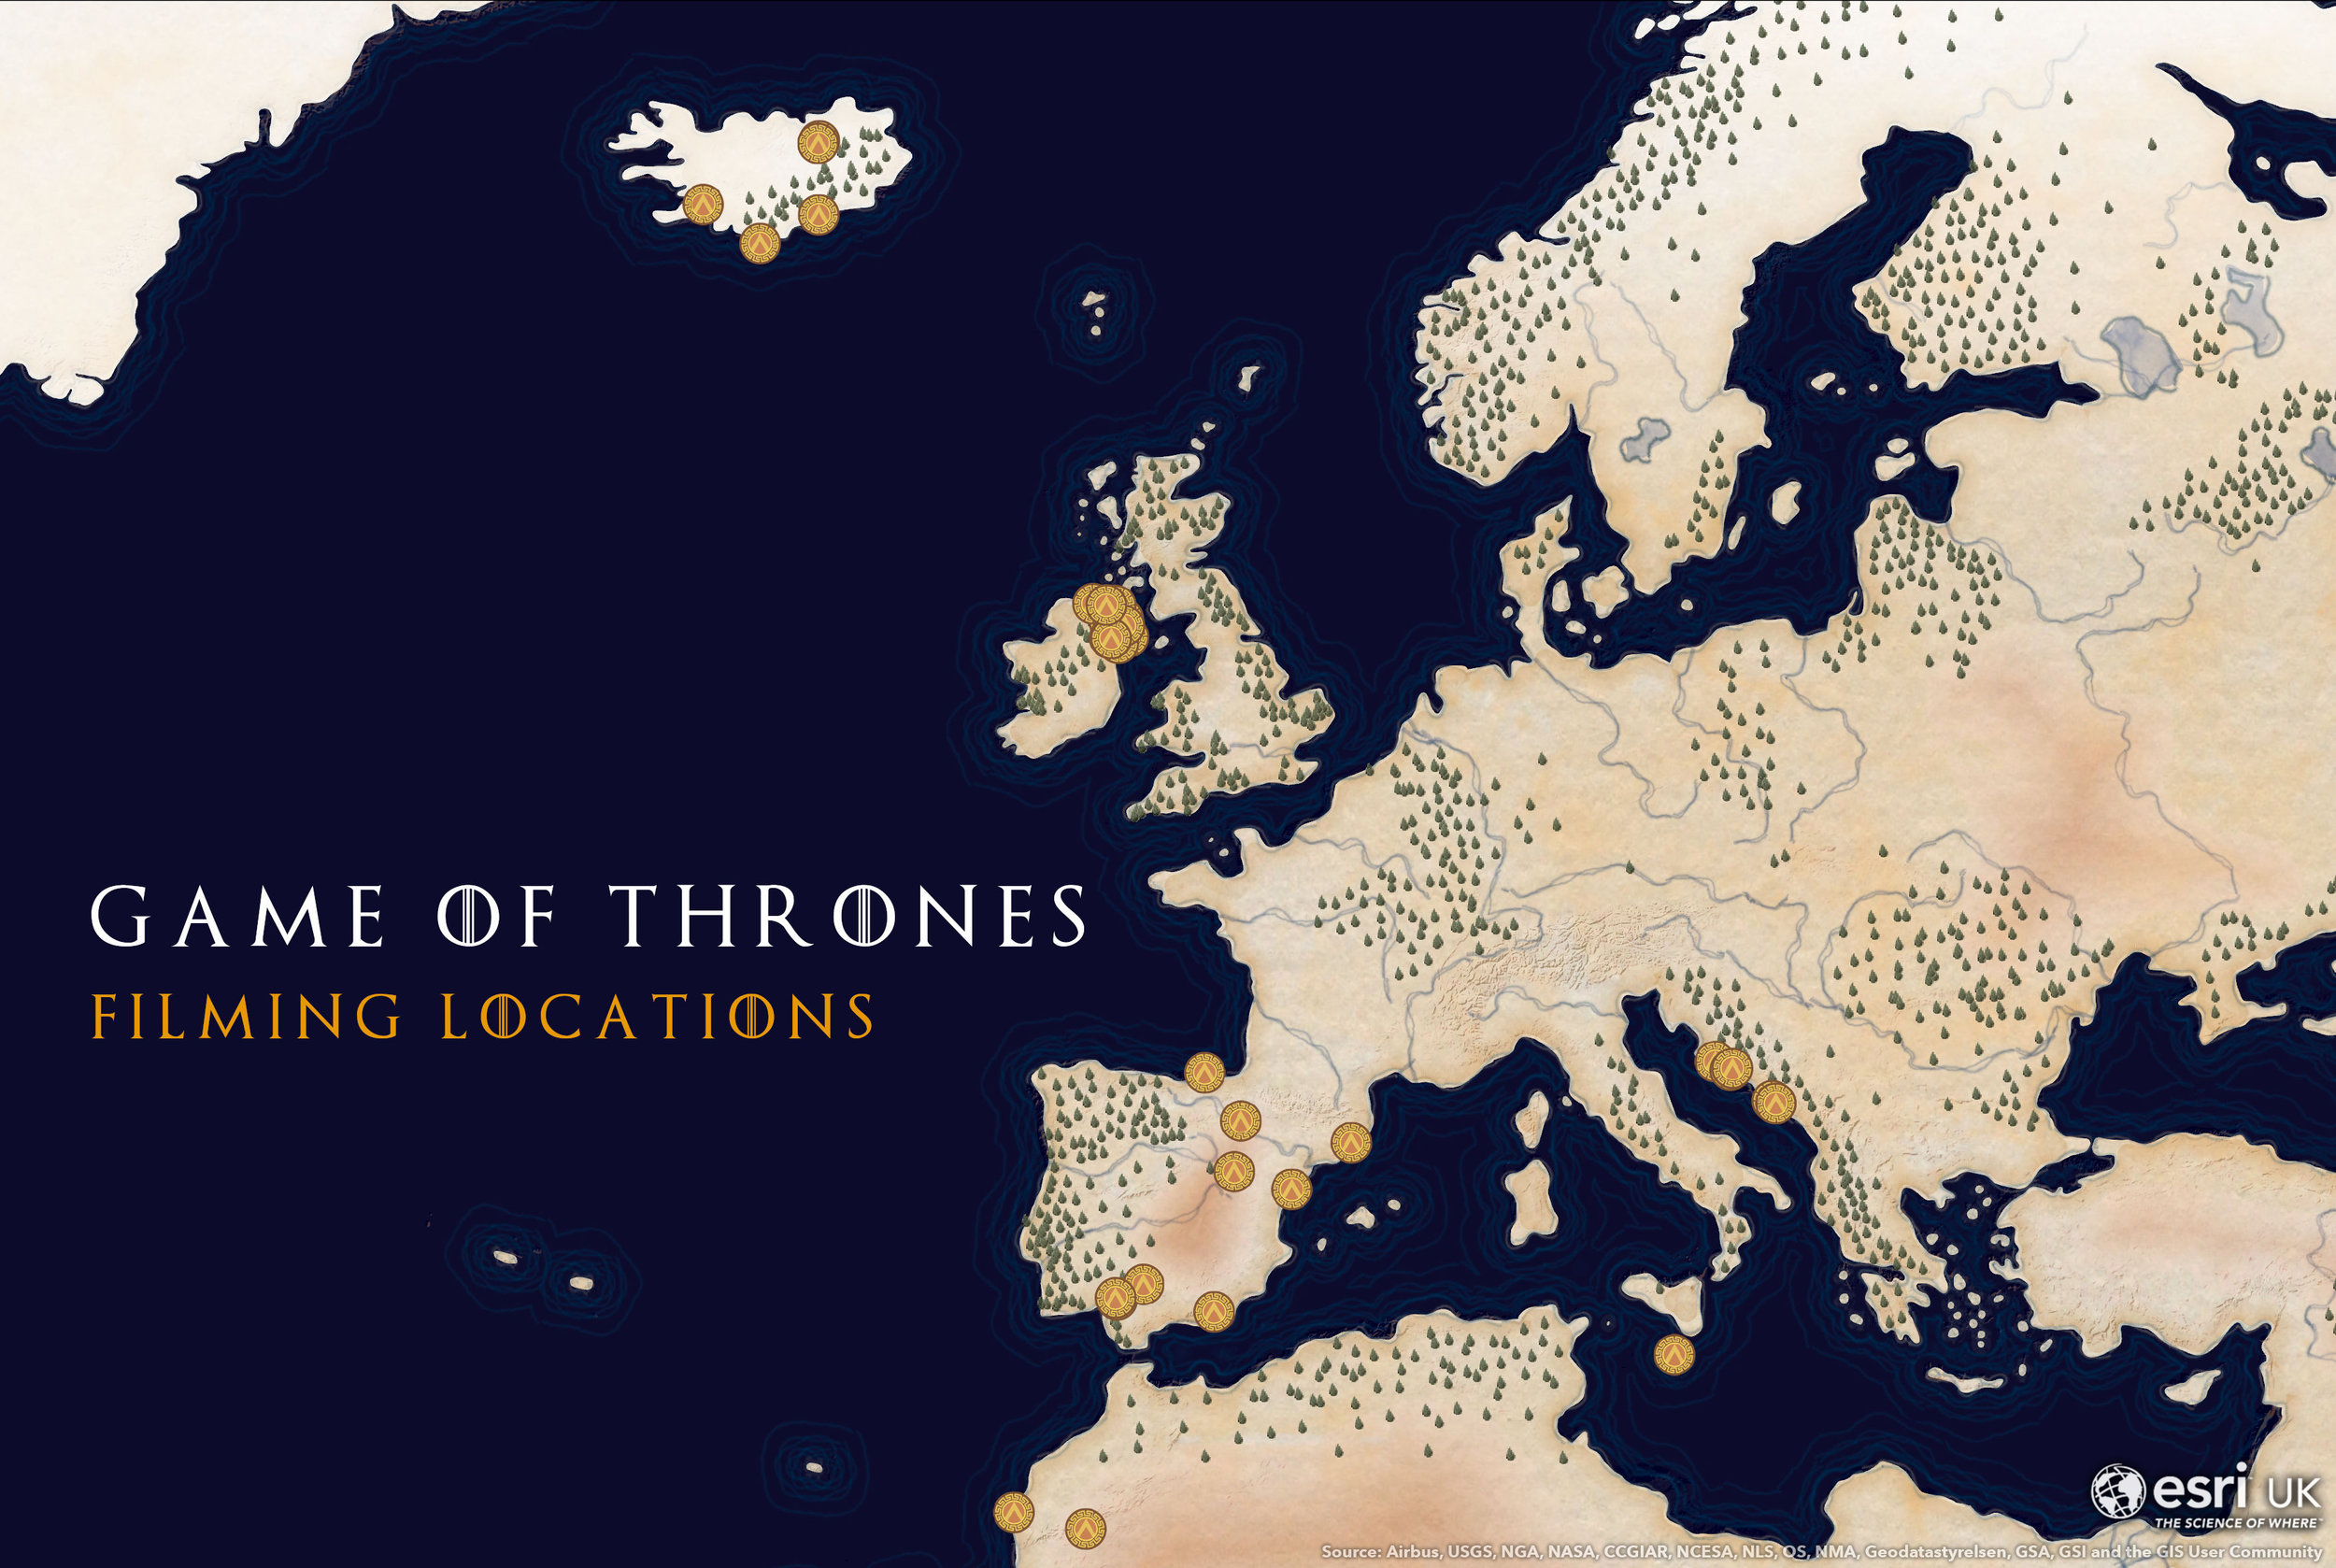 On the Map: Game of Thrones filming locations — CommunityHub Game O Thrones Map on sons of anarchy, fire and blood, gendry map, the kingsroad, themes in a song of ice and fire, a game of thrones collectible card game, clash of kings map, justified map, dallas map, a storm of swords map, valyria map, the prince of winterfell, world map, downton abbey map, star trek map, jericho map, a storm of swords, lord snow, camelot map, guild wars 2 map, spooksville map, winter is coming, walking dead map, a clash of kings, narnia map, a game of thrones, jersey shore map, winterfell map, bloodline map, a game of thrones: genesis, works based on a song of ice and fire, game of thrones - season 1, the pointy end, a golden crown, got map, game of thrones - season 2, tales of dunk and egg, qarth map,